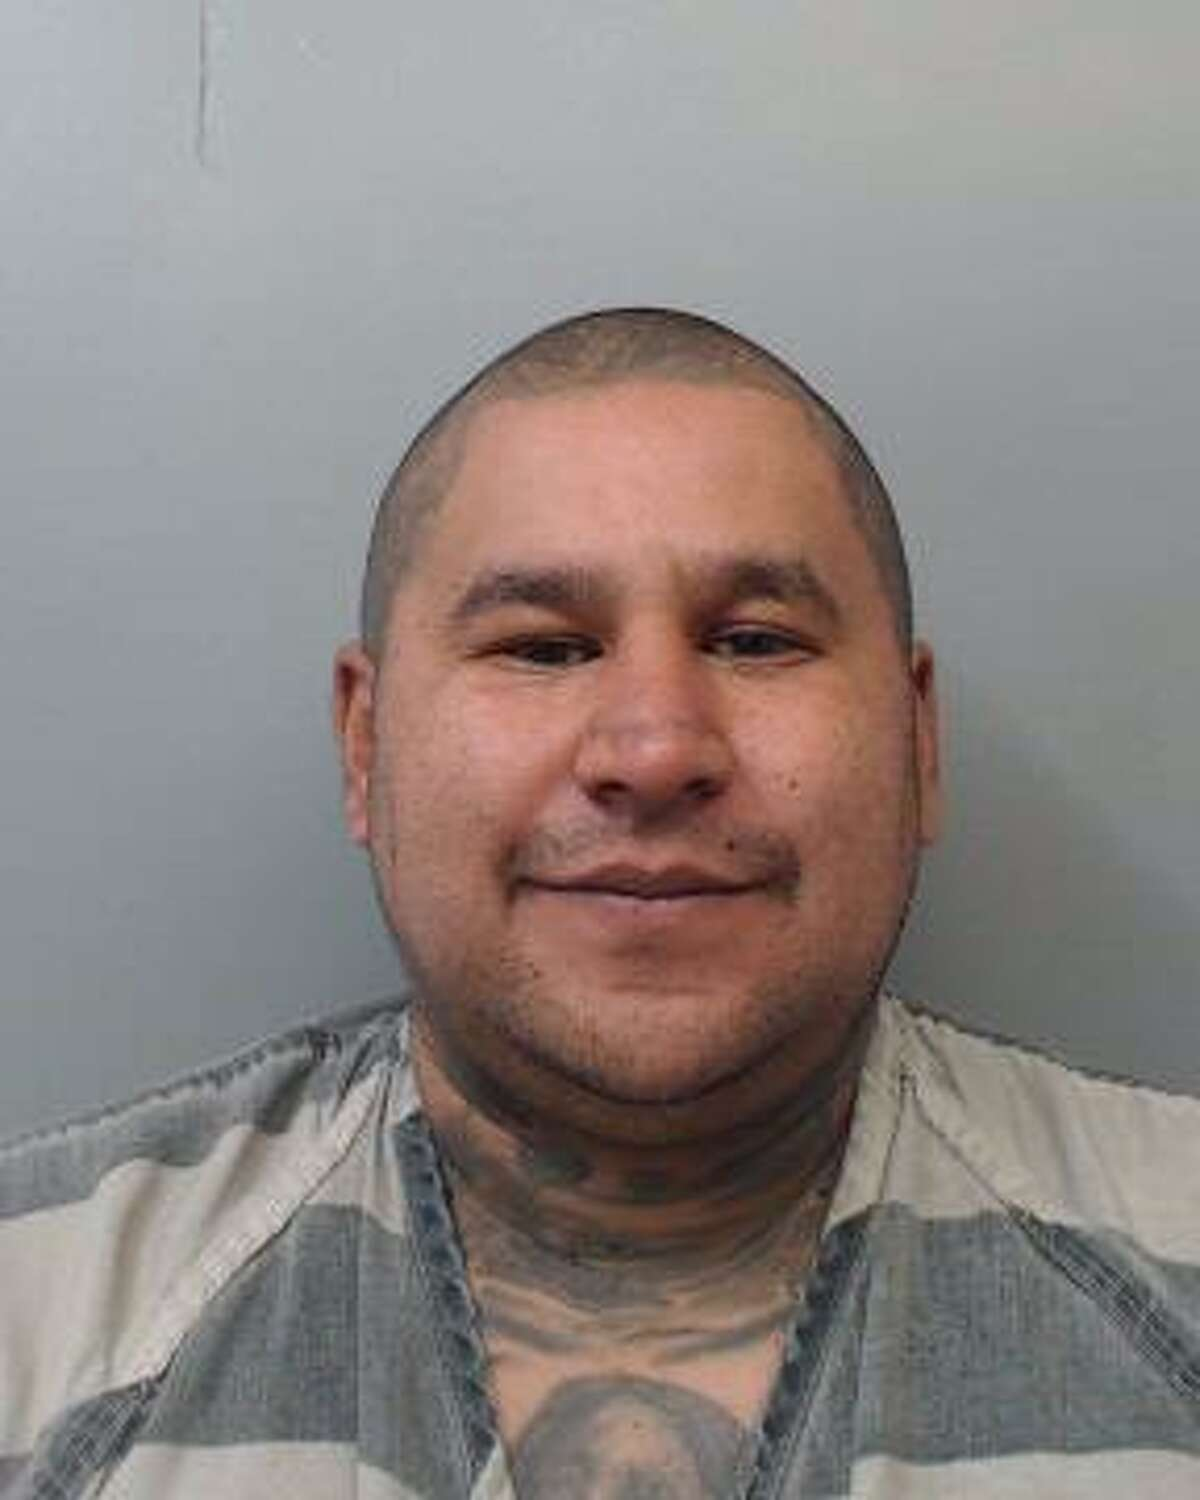 Jose Antonio Sanchez was charged with aggravated assault with a deadly weapon.